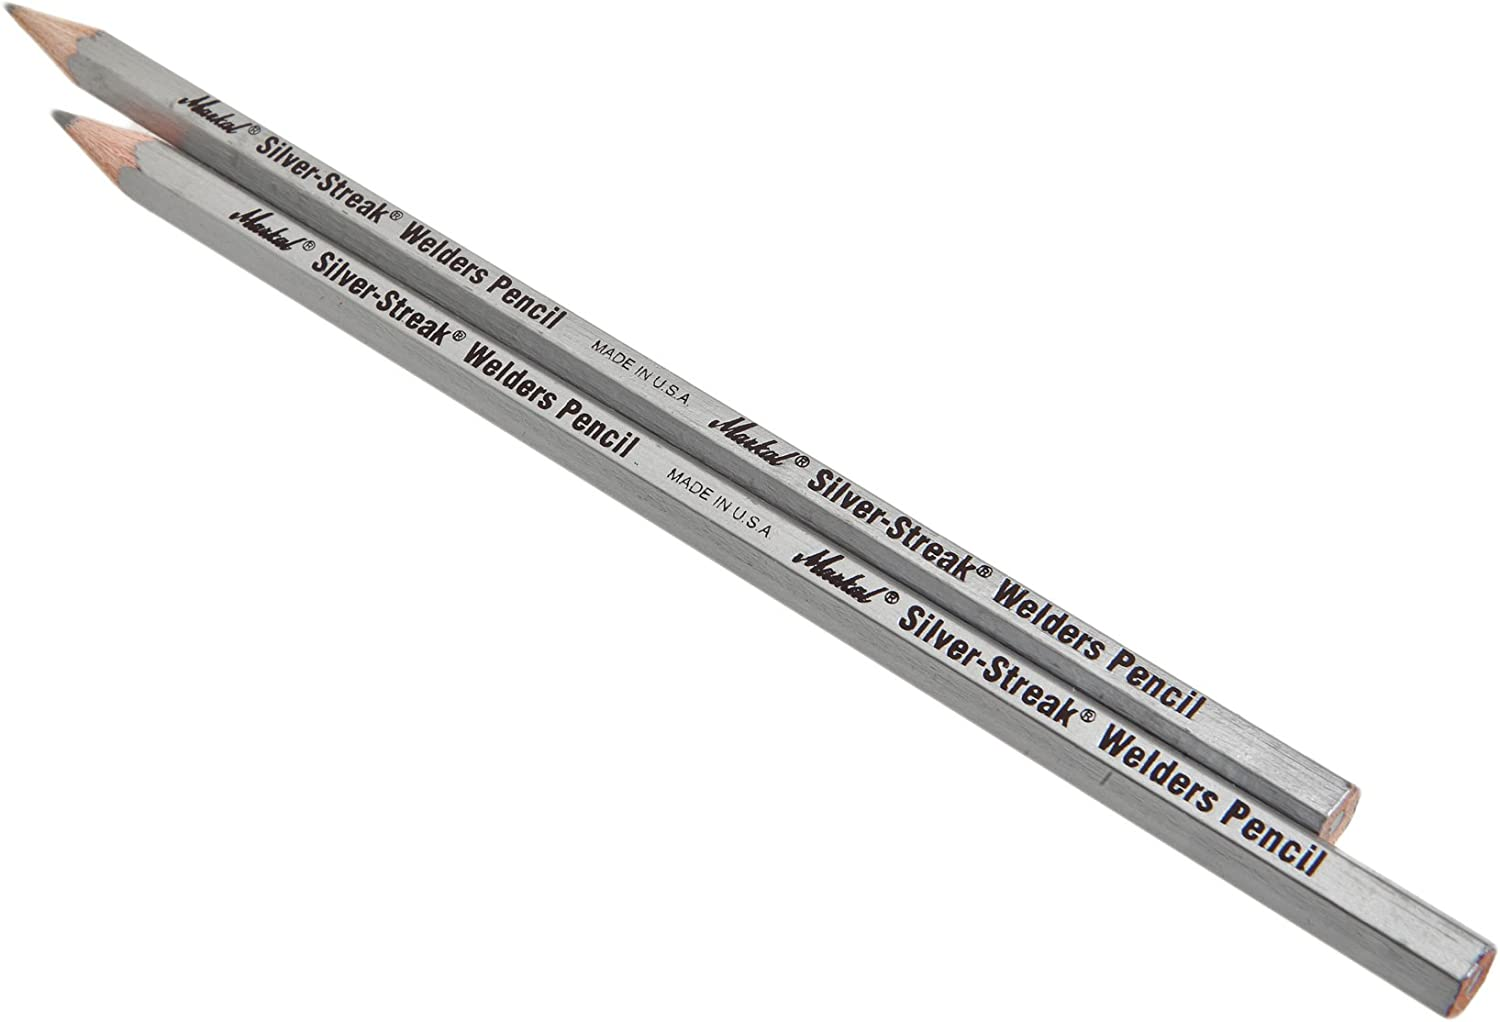 2-Pack Forney 70794 Marking Pencil Silver Lead